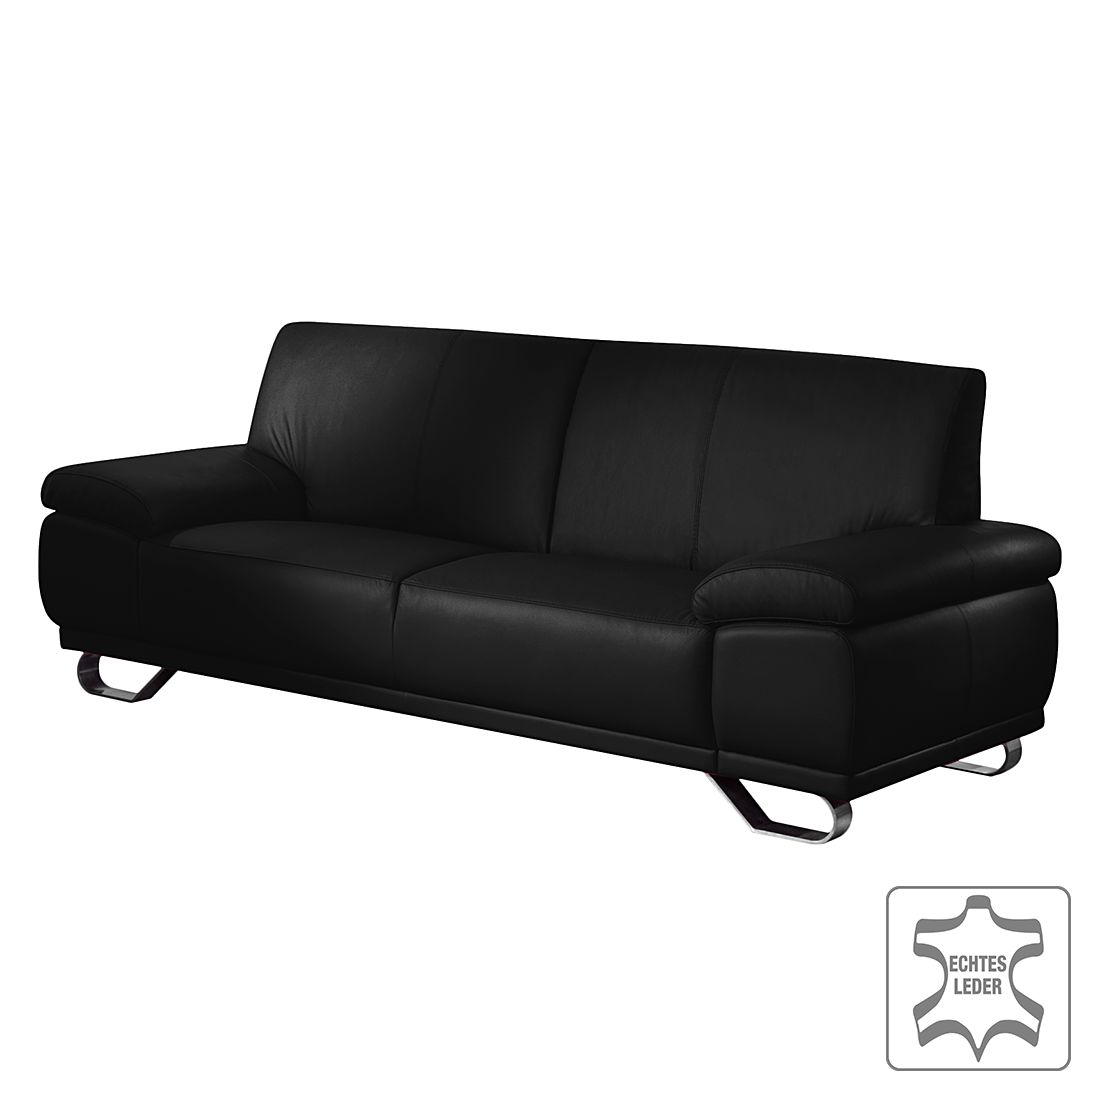 einzelsofas archives. Black Bedroom Furniture Sets. Home Design Ideas